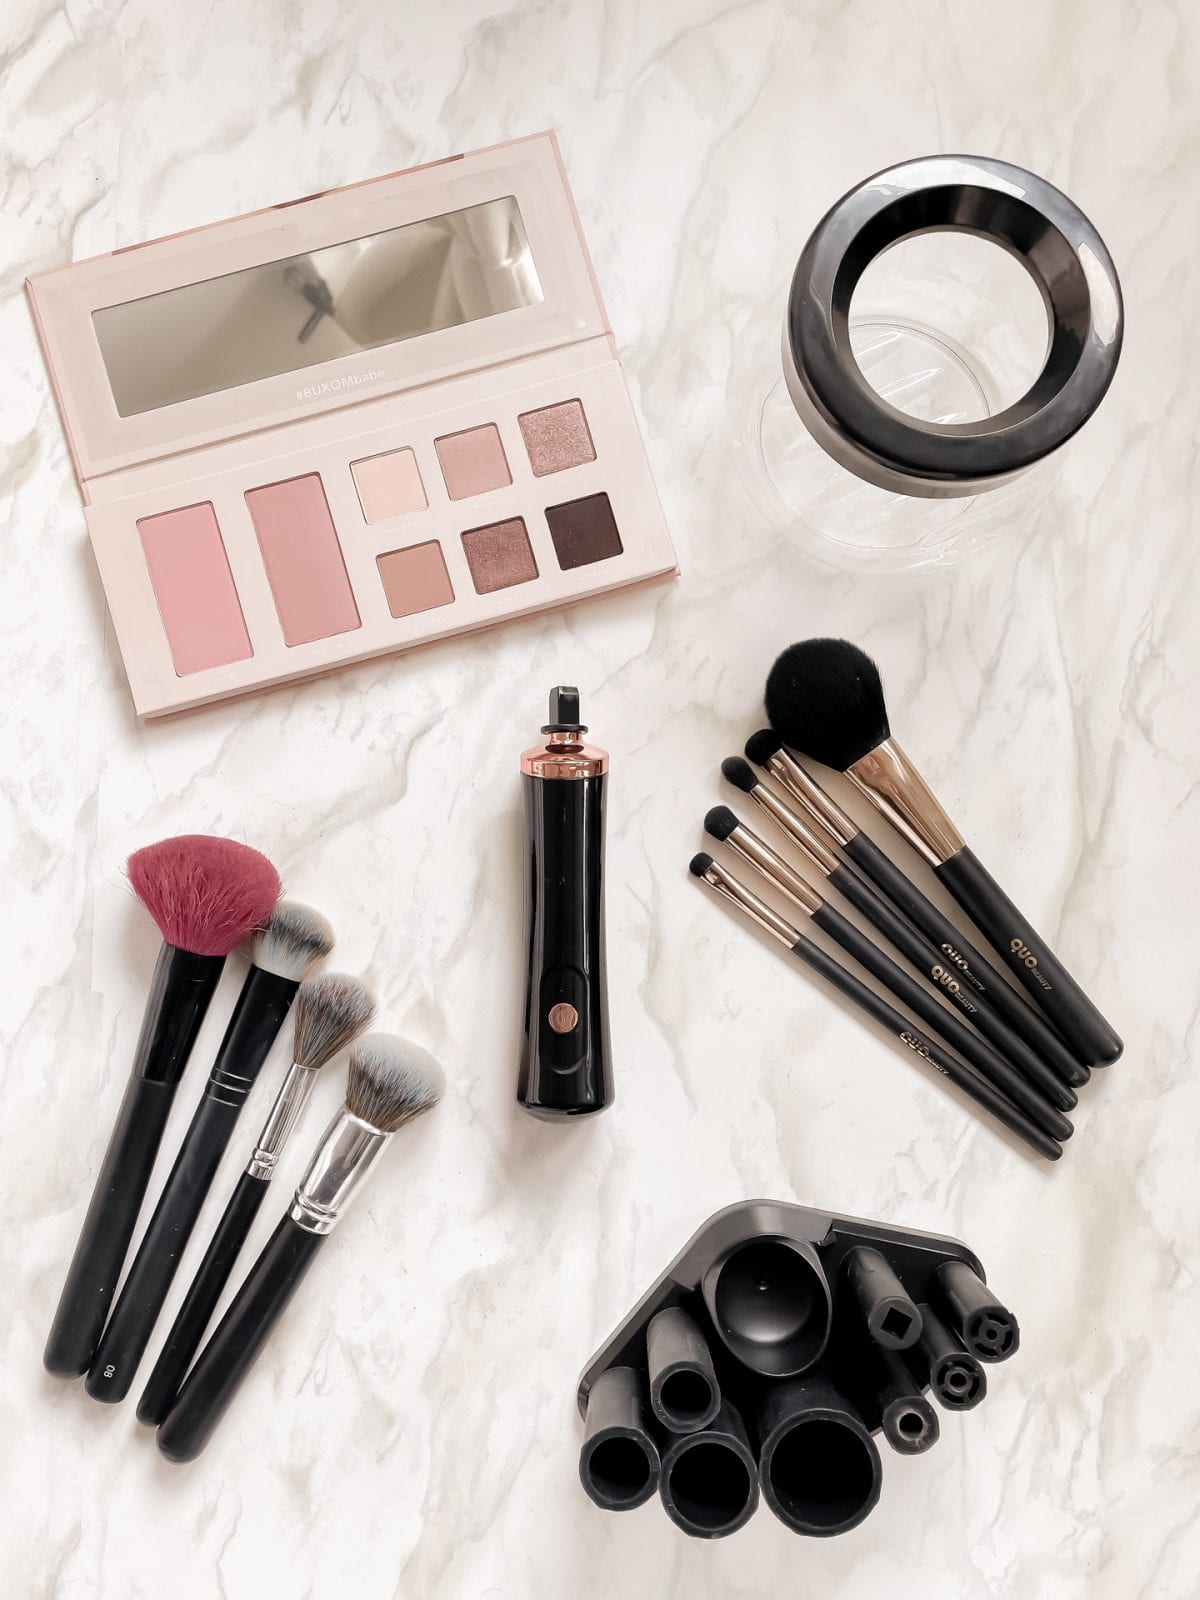 Learn how to clean your makeup brushes easily and effectively with the electric makeup brush cleaner set. more on yesmissy.com